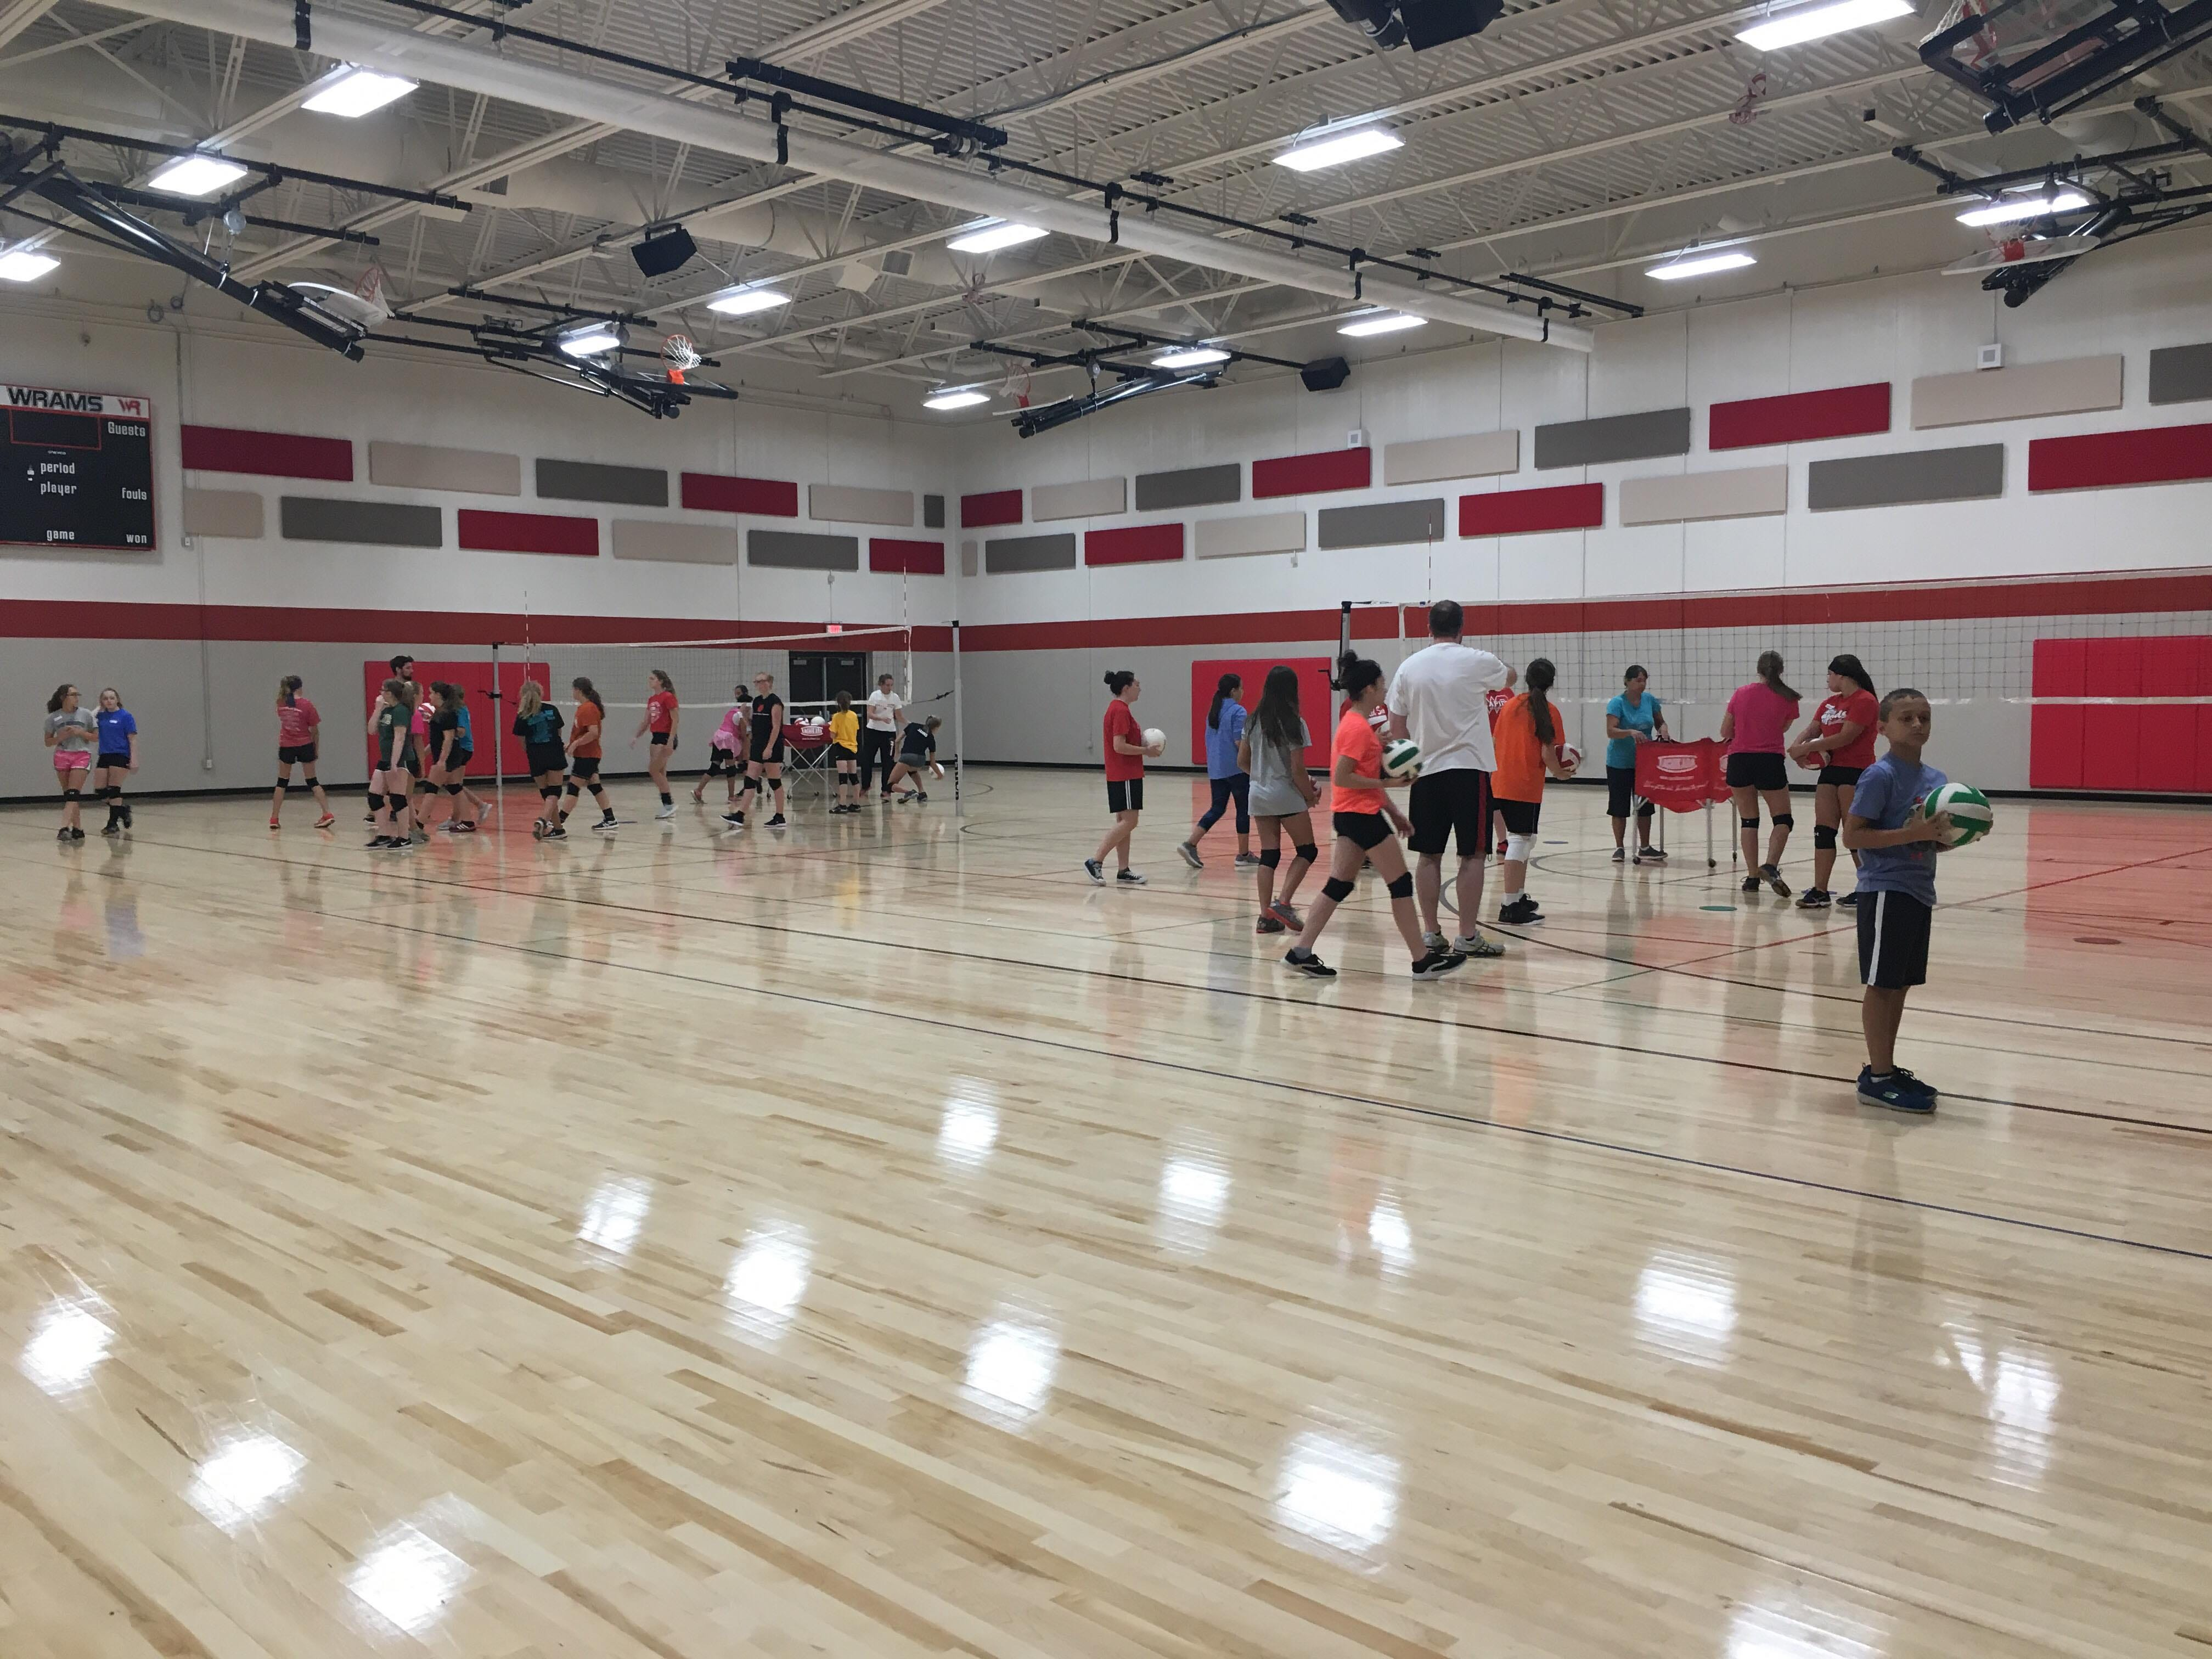 Volleyball players enjoy the new gym at Wisconsin Rapids Area Middle School Friday, August 24, 2018.